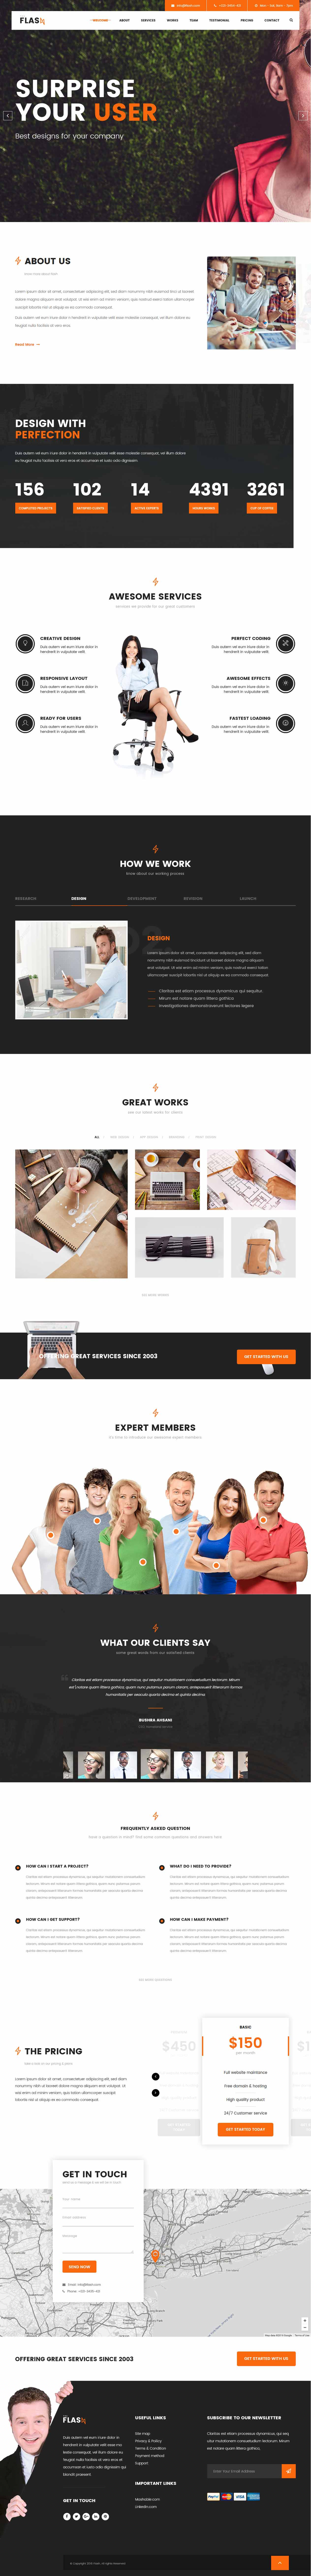 FLASH - One Page HTML Bootstrap Template for Agency, Startup ...